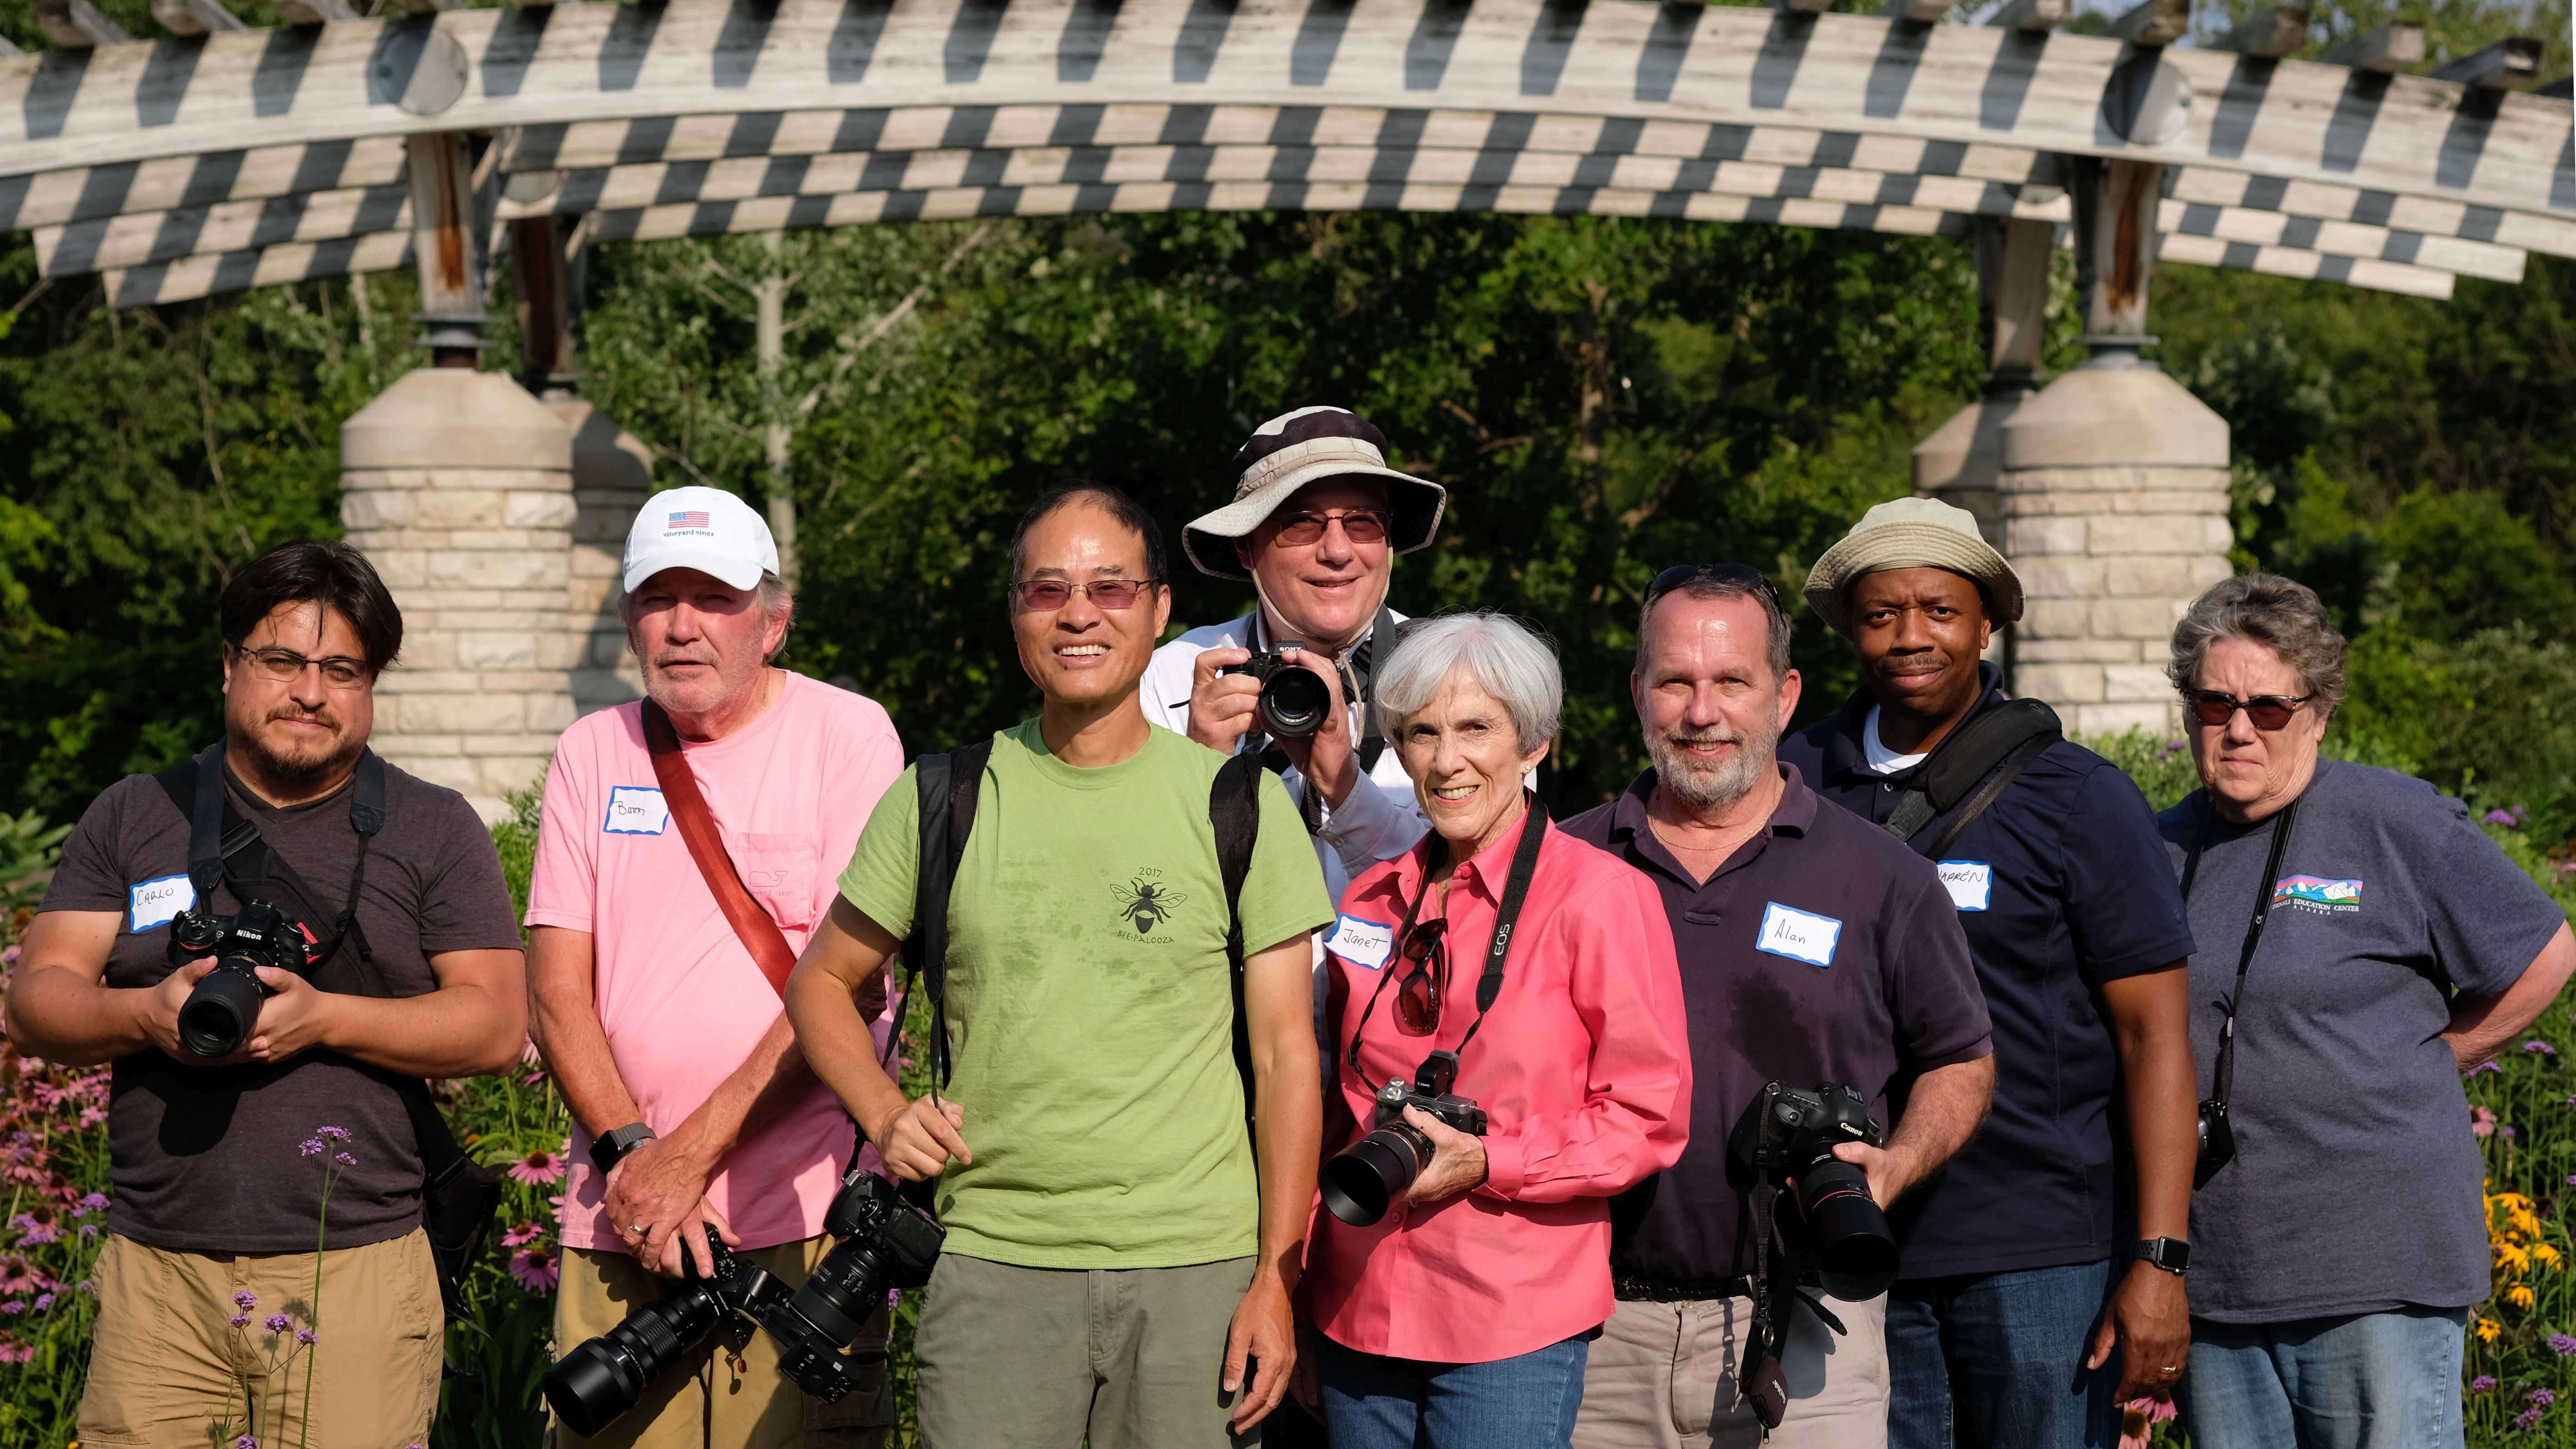 Group Photo With Only Part Of The Group, By Patrick With A Fuji Mirrorless.